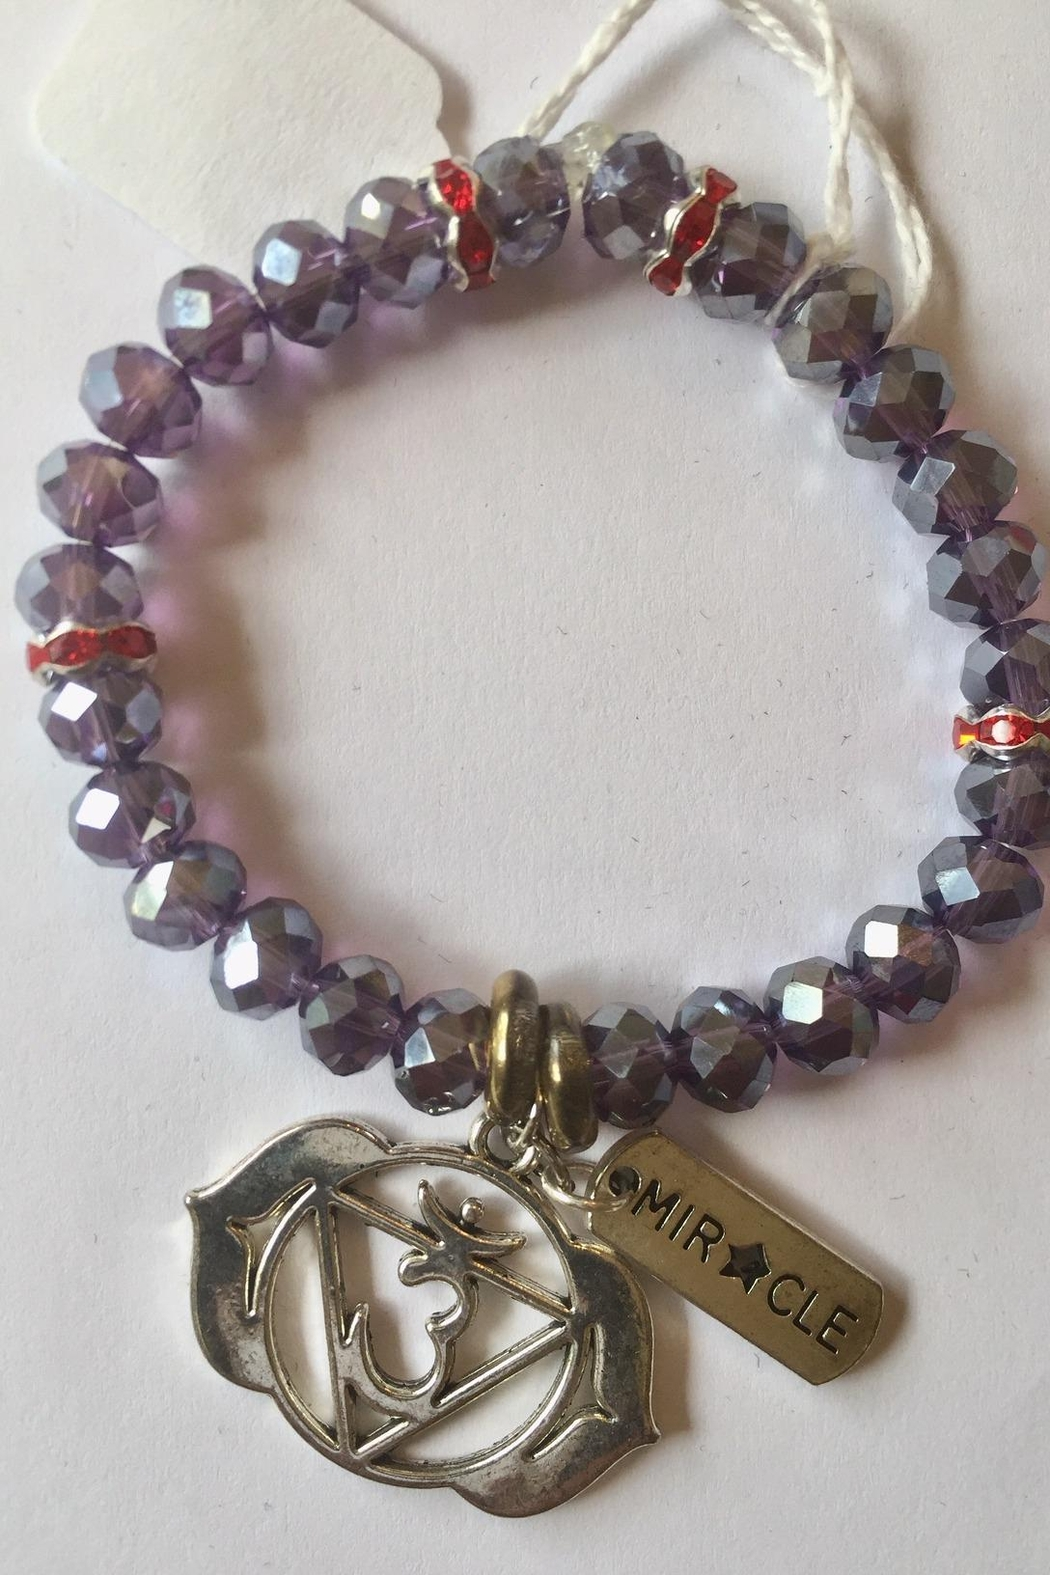 Handmade by local NY artist Designer Spiritual Bracelet With Aum And Miracle Charm - Main Image